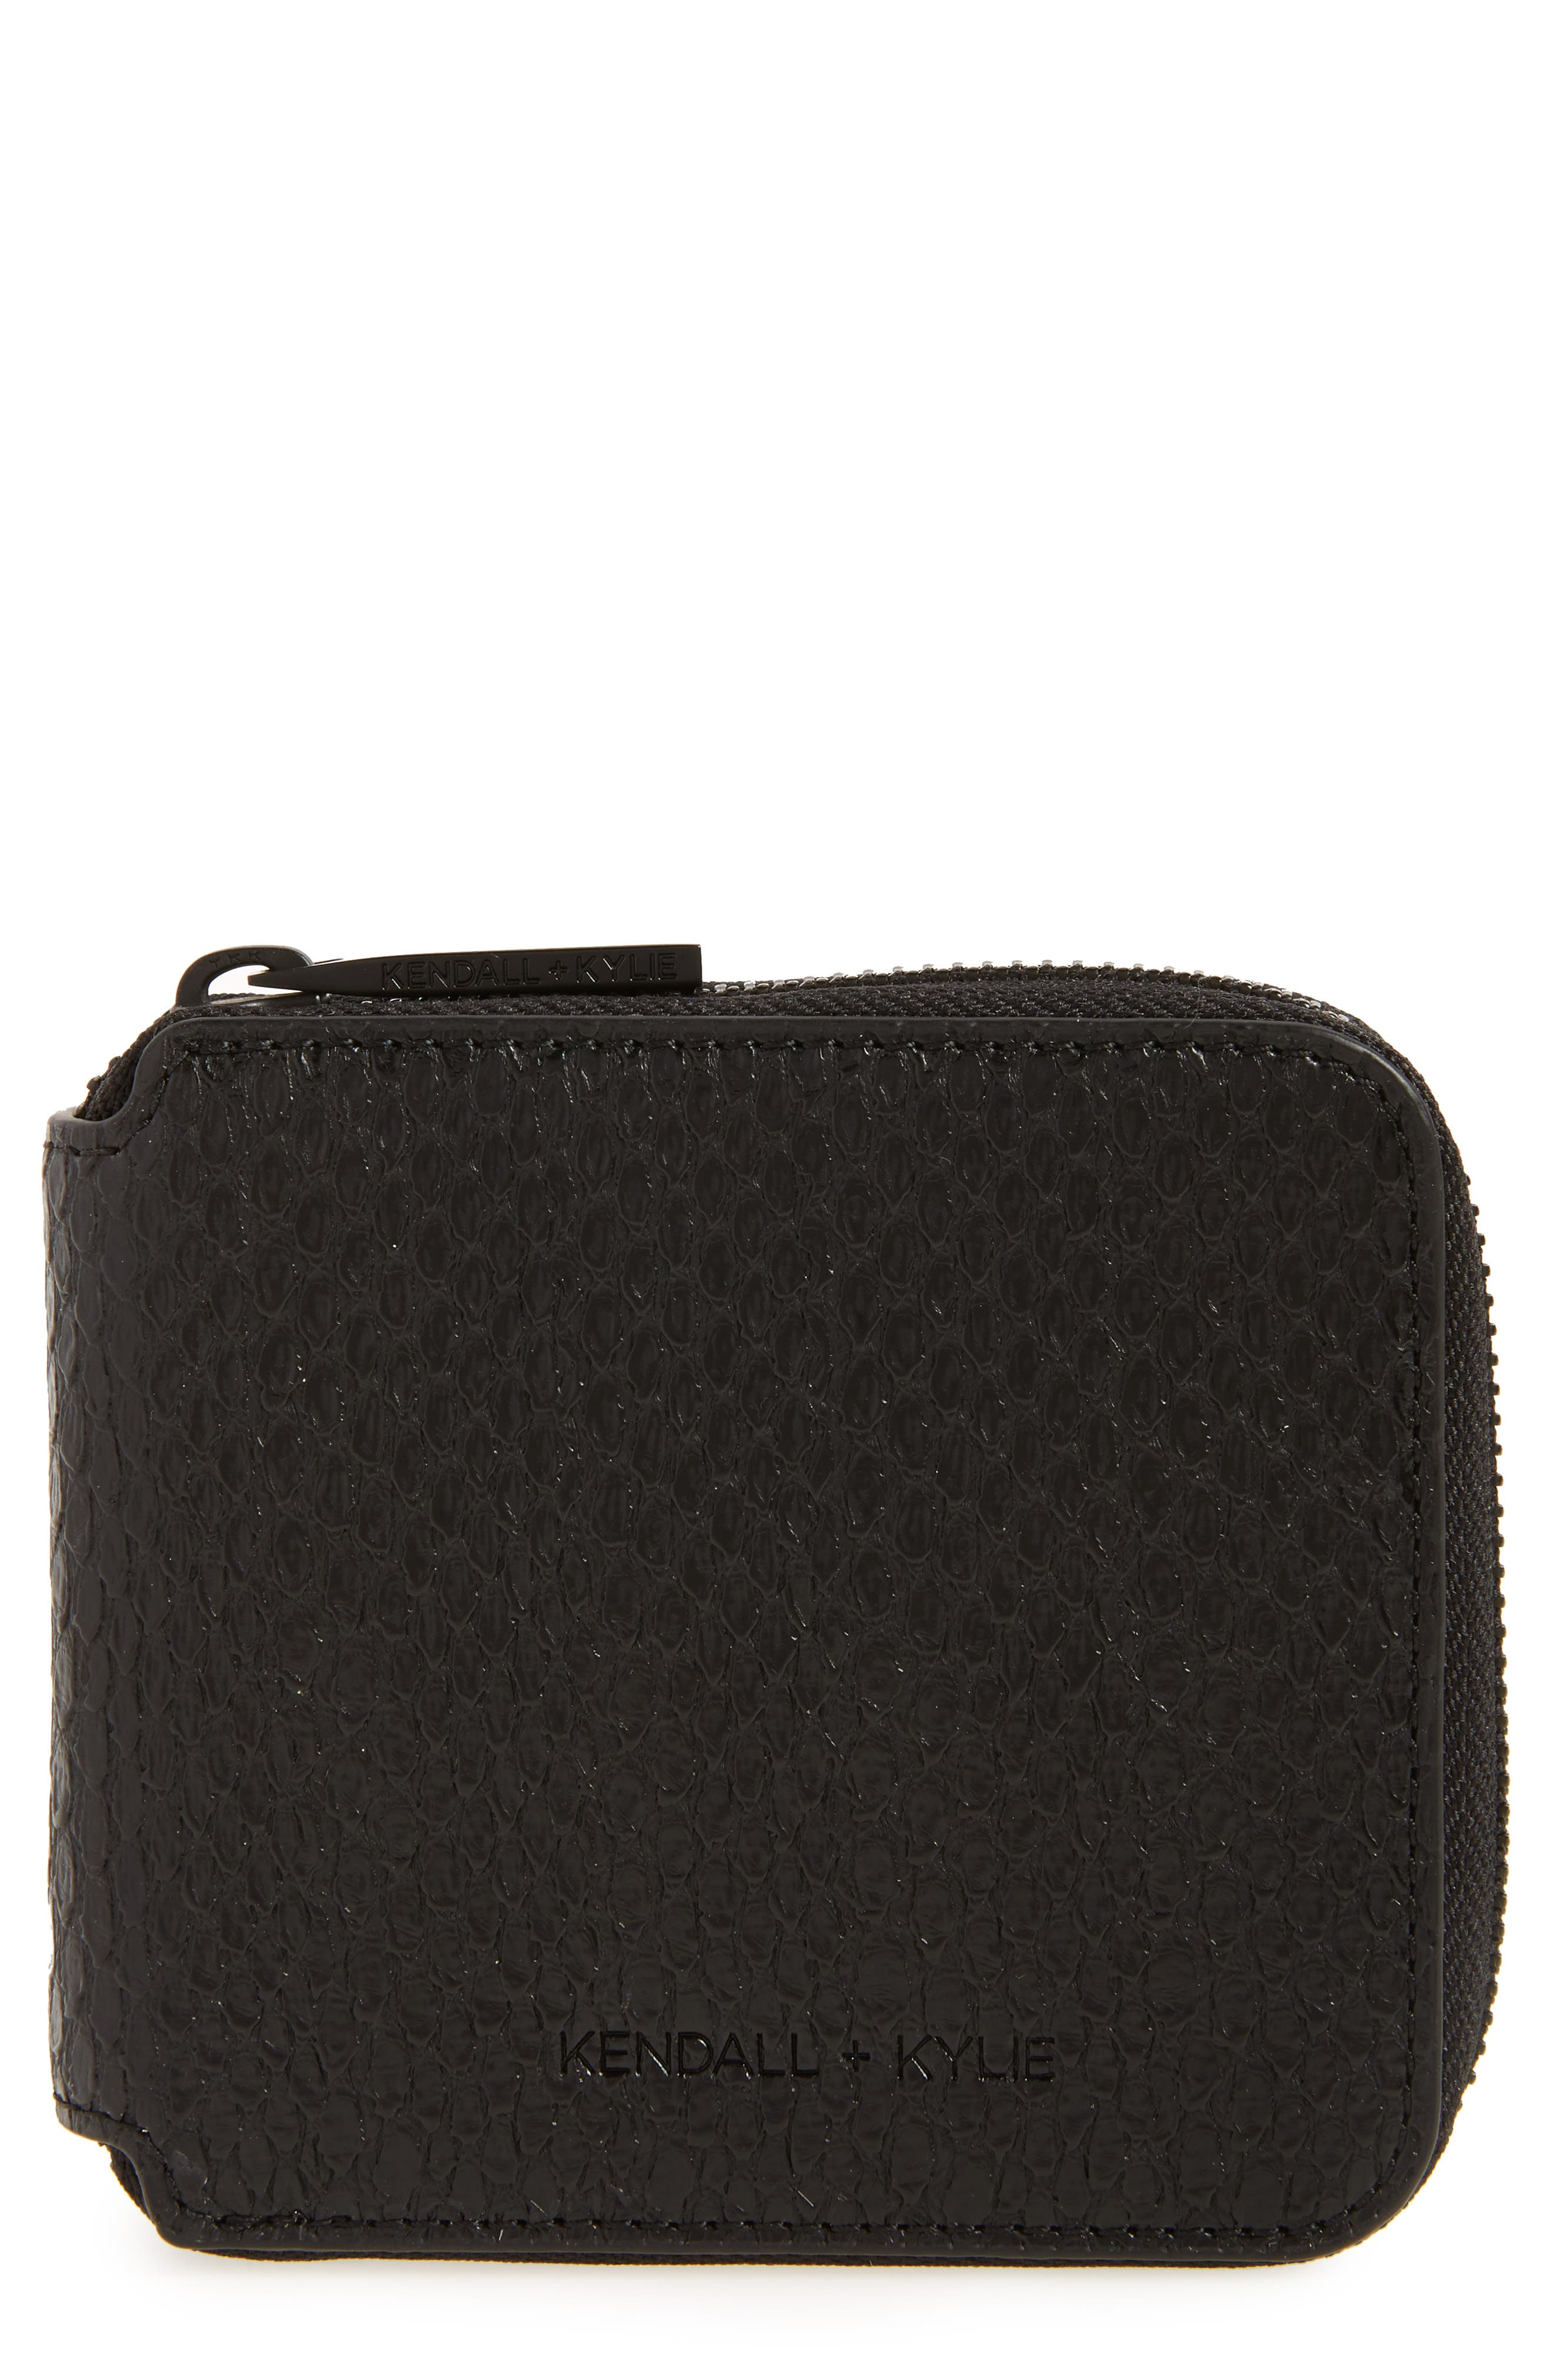 Brodie Faux Leather Wallet,                         Main,                         color, 004